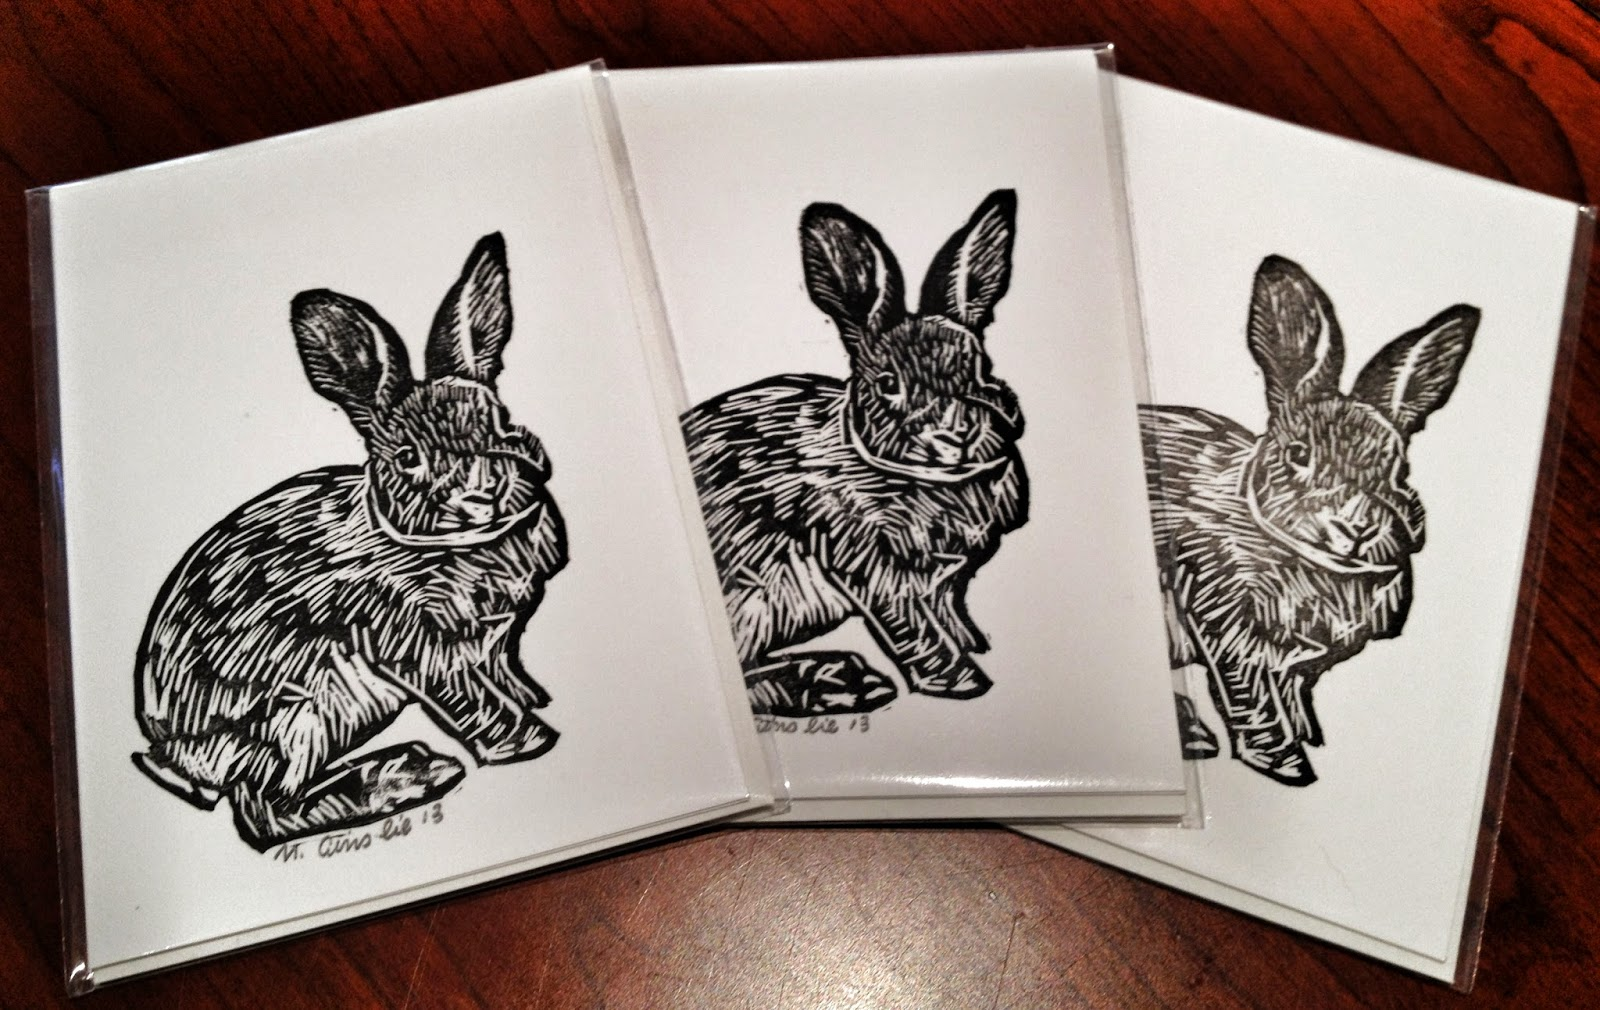 RABBIT Cards - 3 Hand Printed Linocuts on Premium Heavy Weight Paper (With Envelopes)